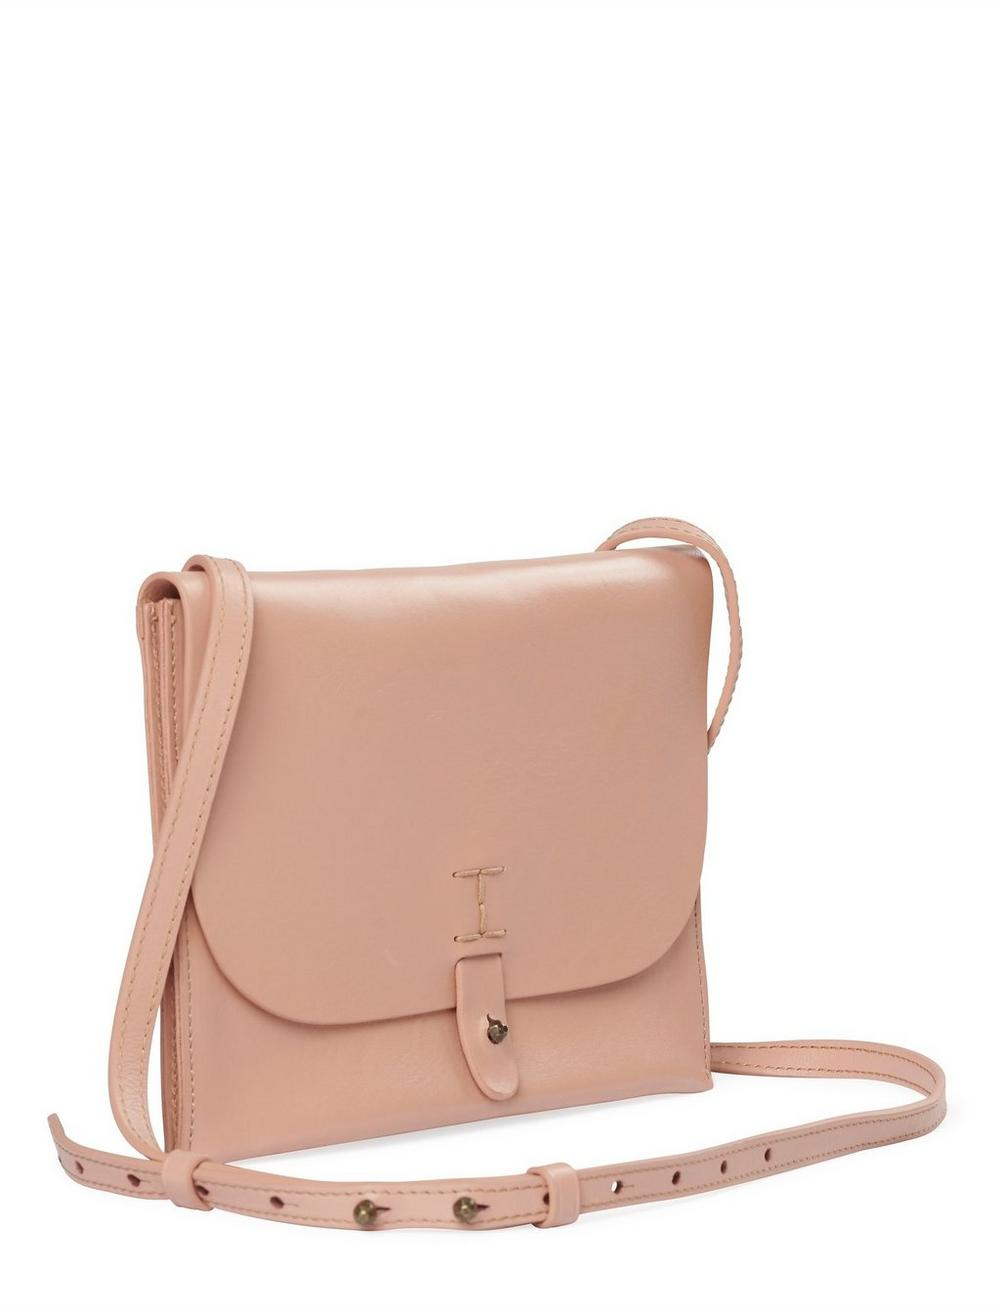 THE POINT LEATHER CROSSBODY BAG, image 3